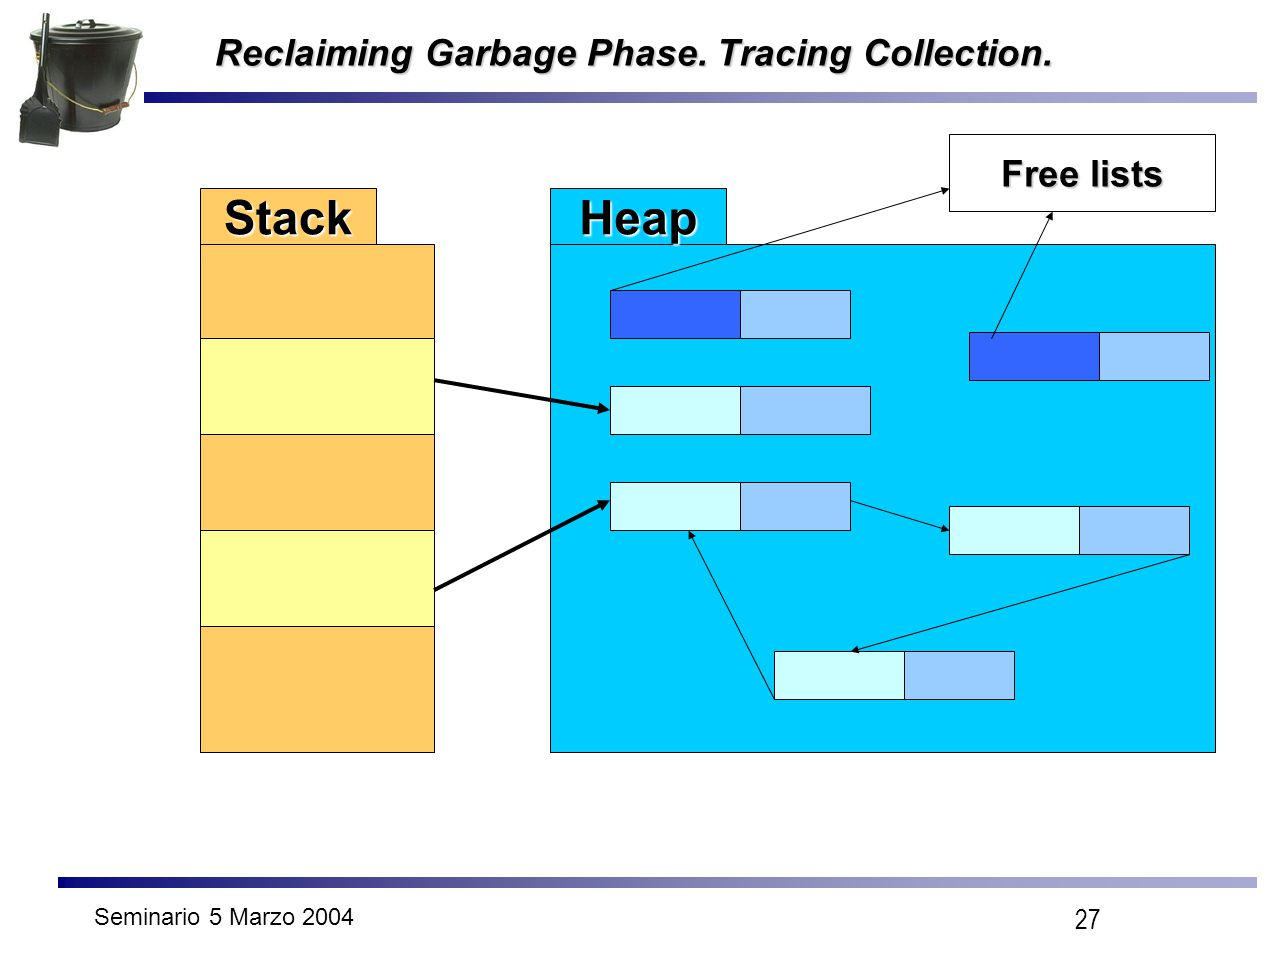 Seminario 5 Marzo 2004 27 Reclaiming Garbage Phase. Tracing Collection. StackHeap Free lists